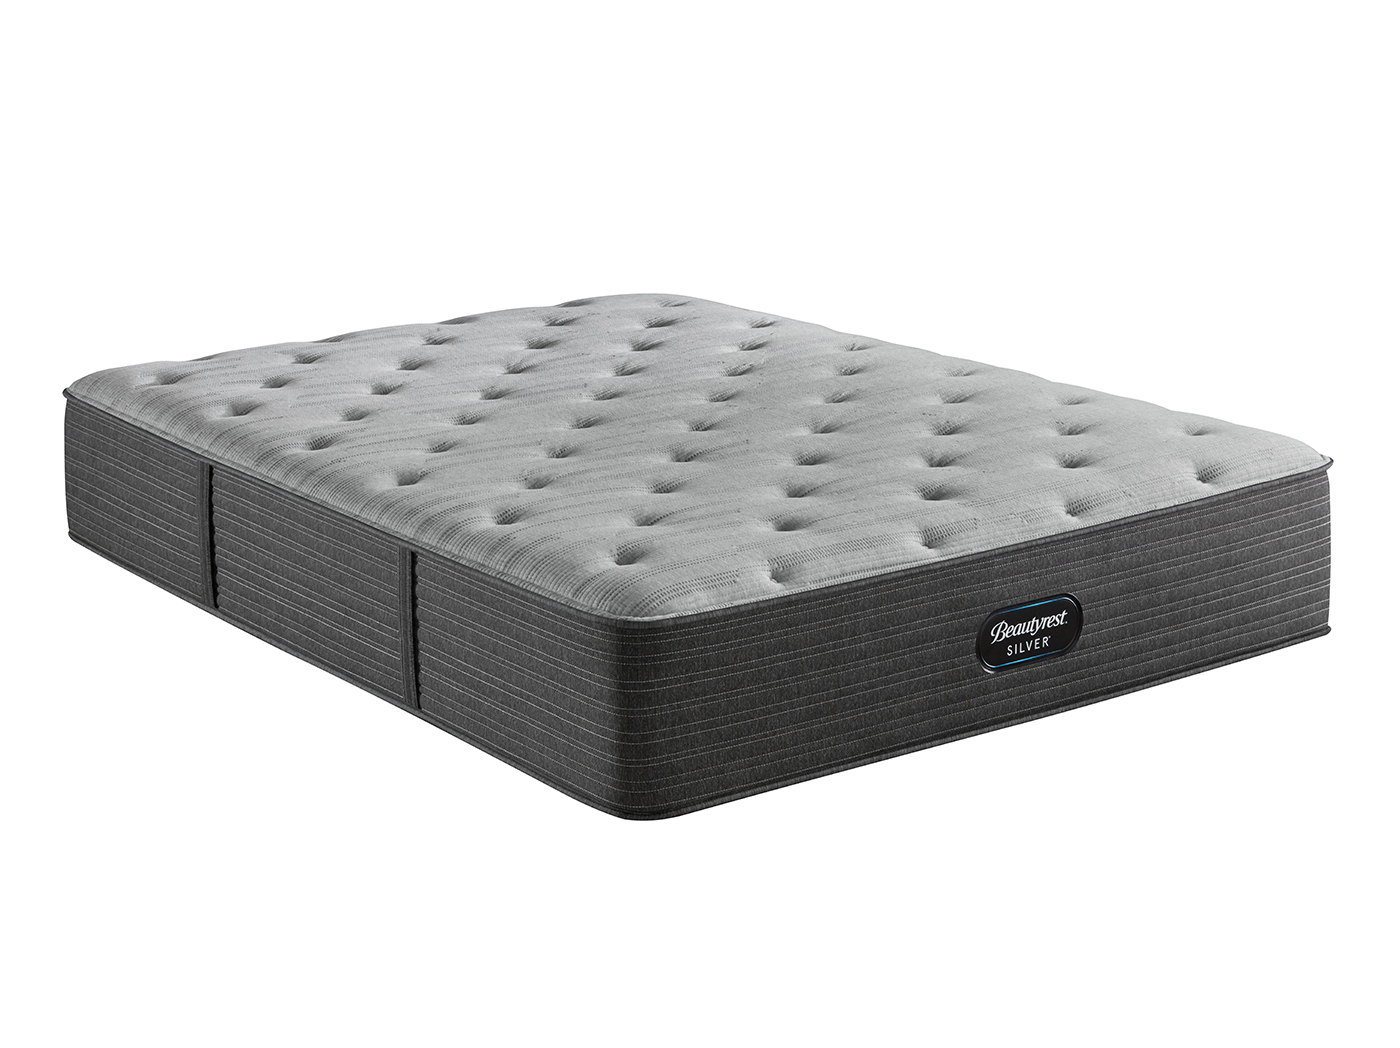 About California Queen Mattress Beautyrest Silver BRS900C-RS Medium Twin Mattress